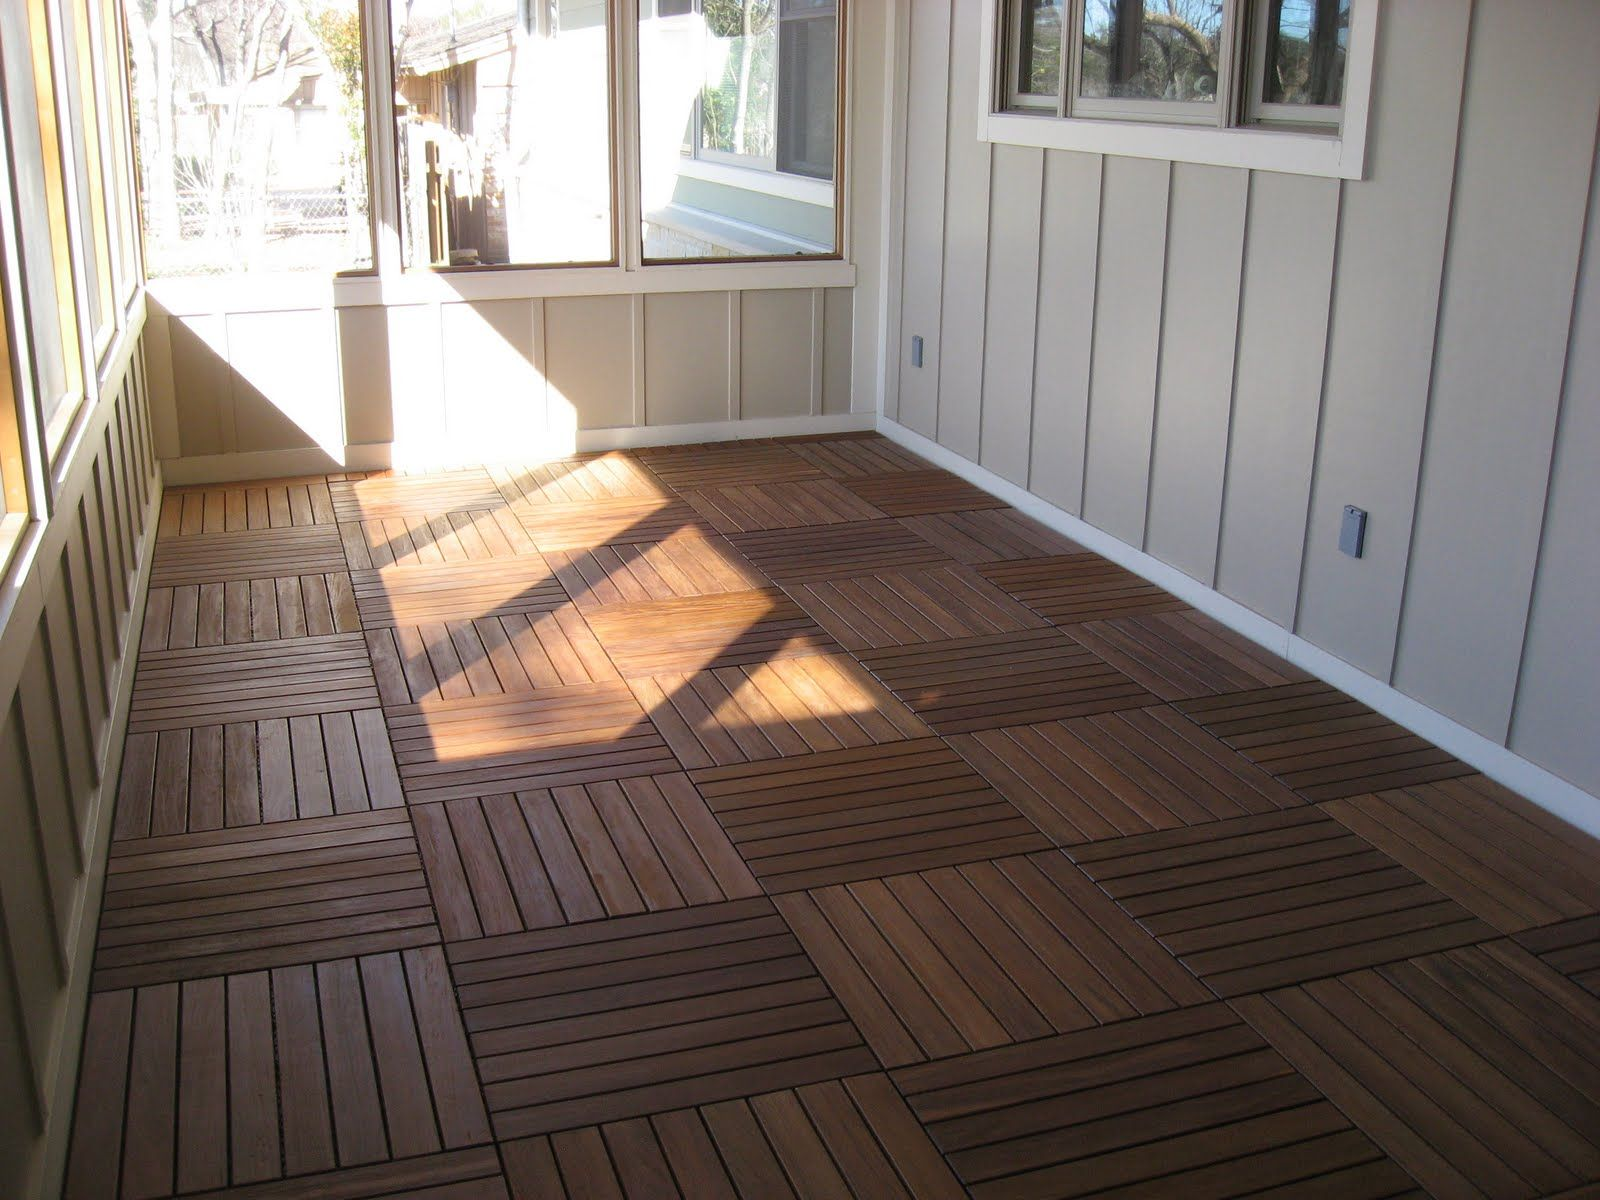 Screen Porch Flooring Ideas Just For A Minute Though